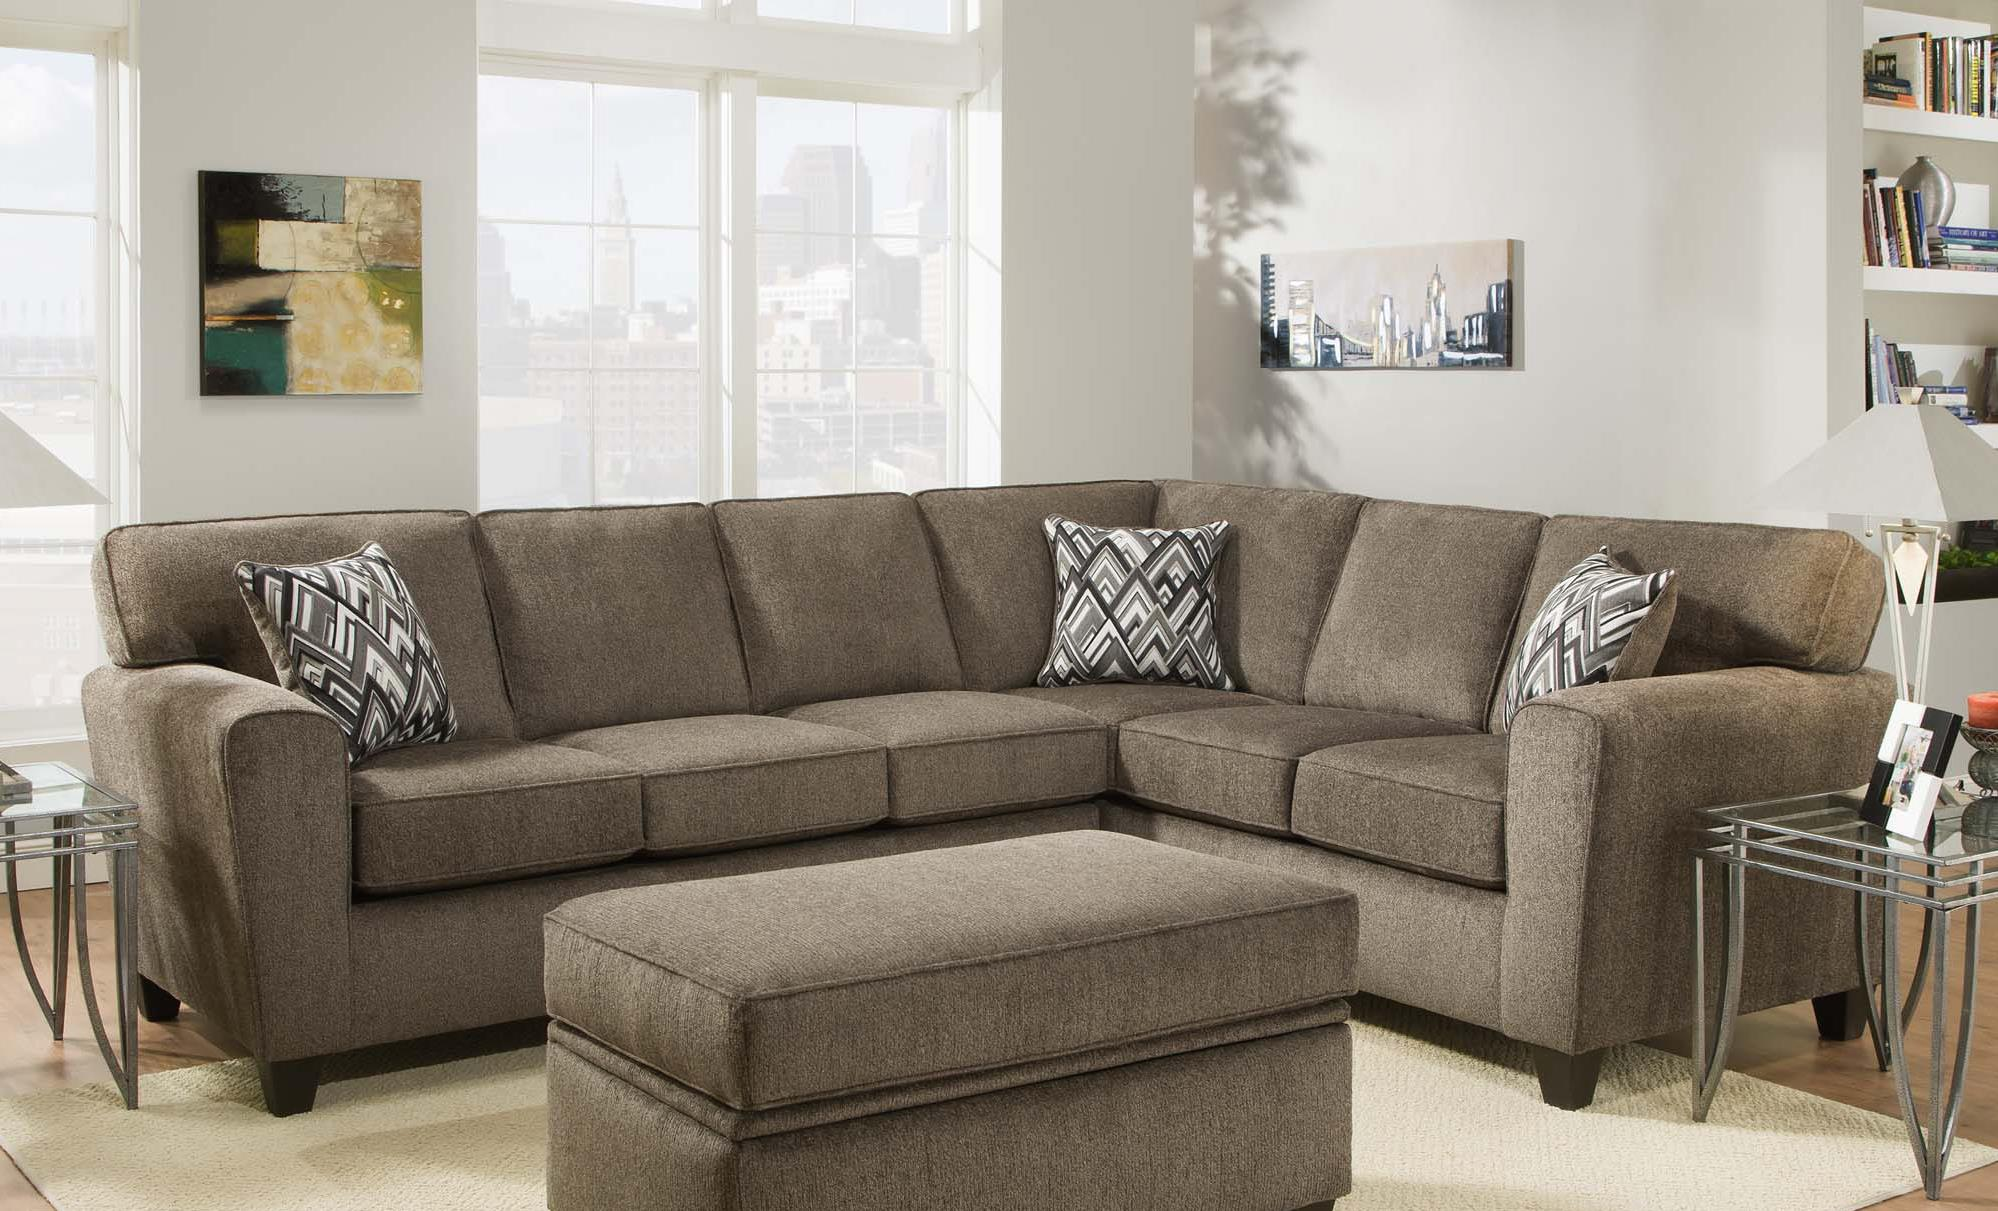 Vendor 610 3100 Sectional Sofa Seats 5 Becker Furniture World